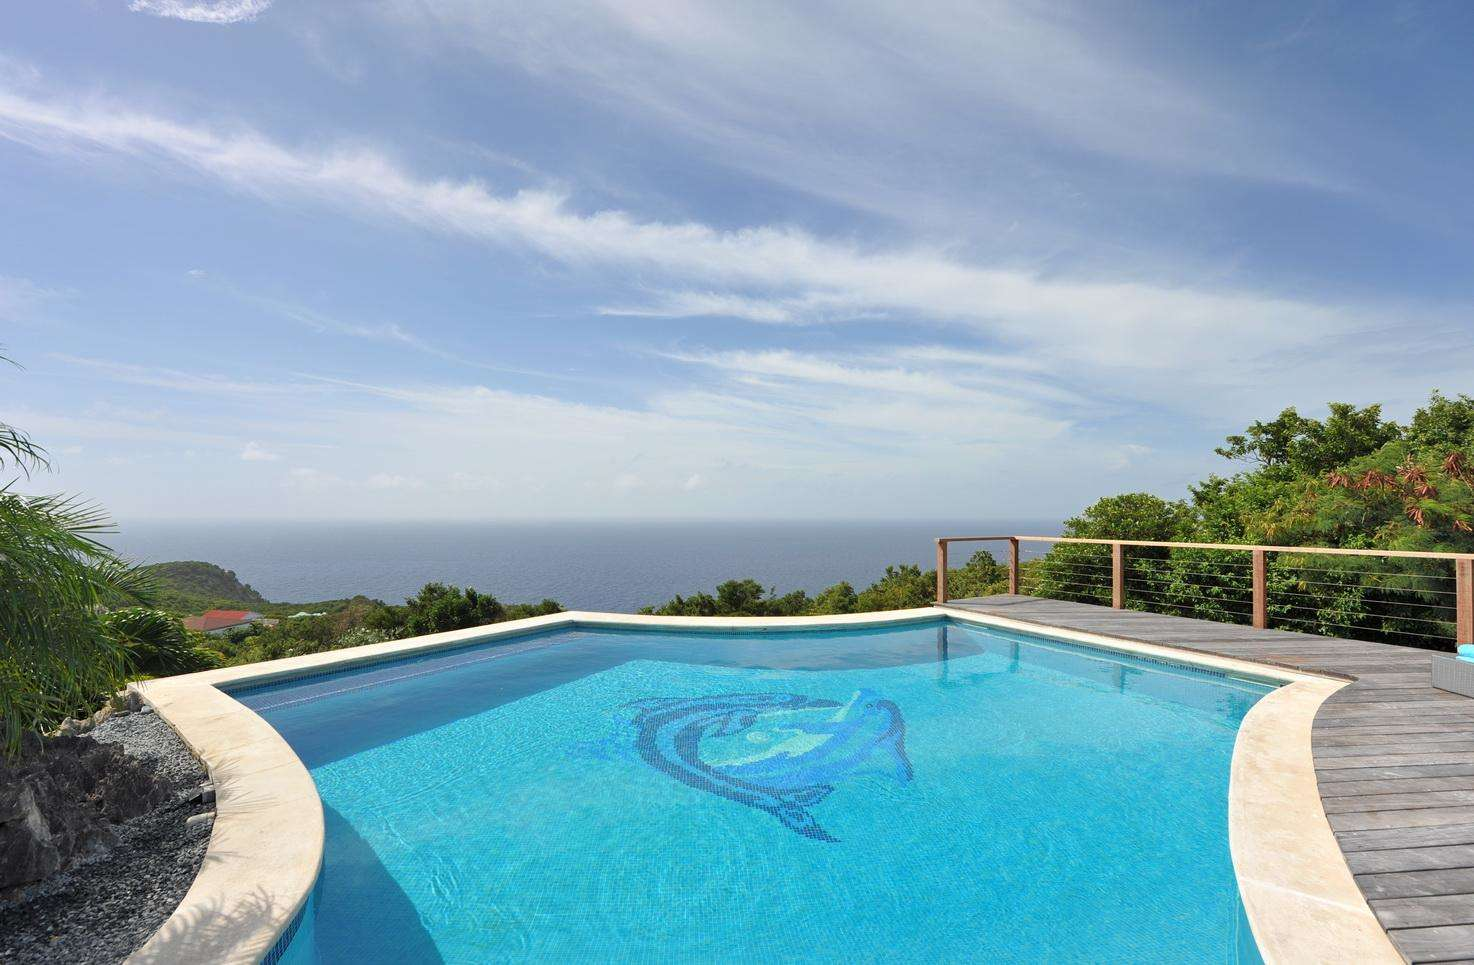 Luxury villa rentals caribbean - St barthelemy - Gouverneur - Grand Large - Image 1/17